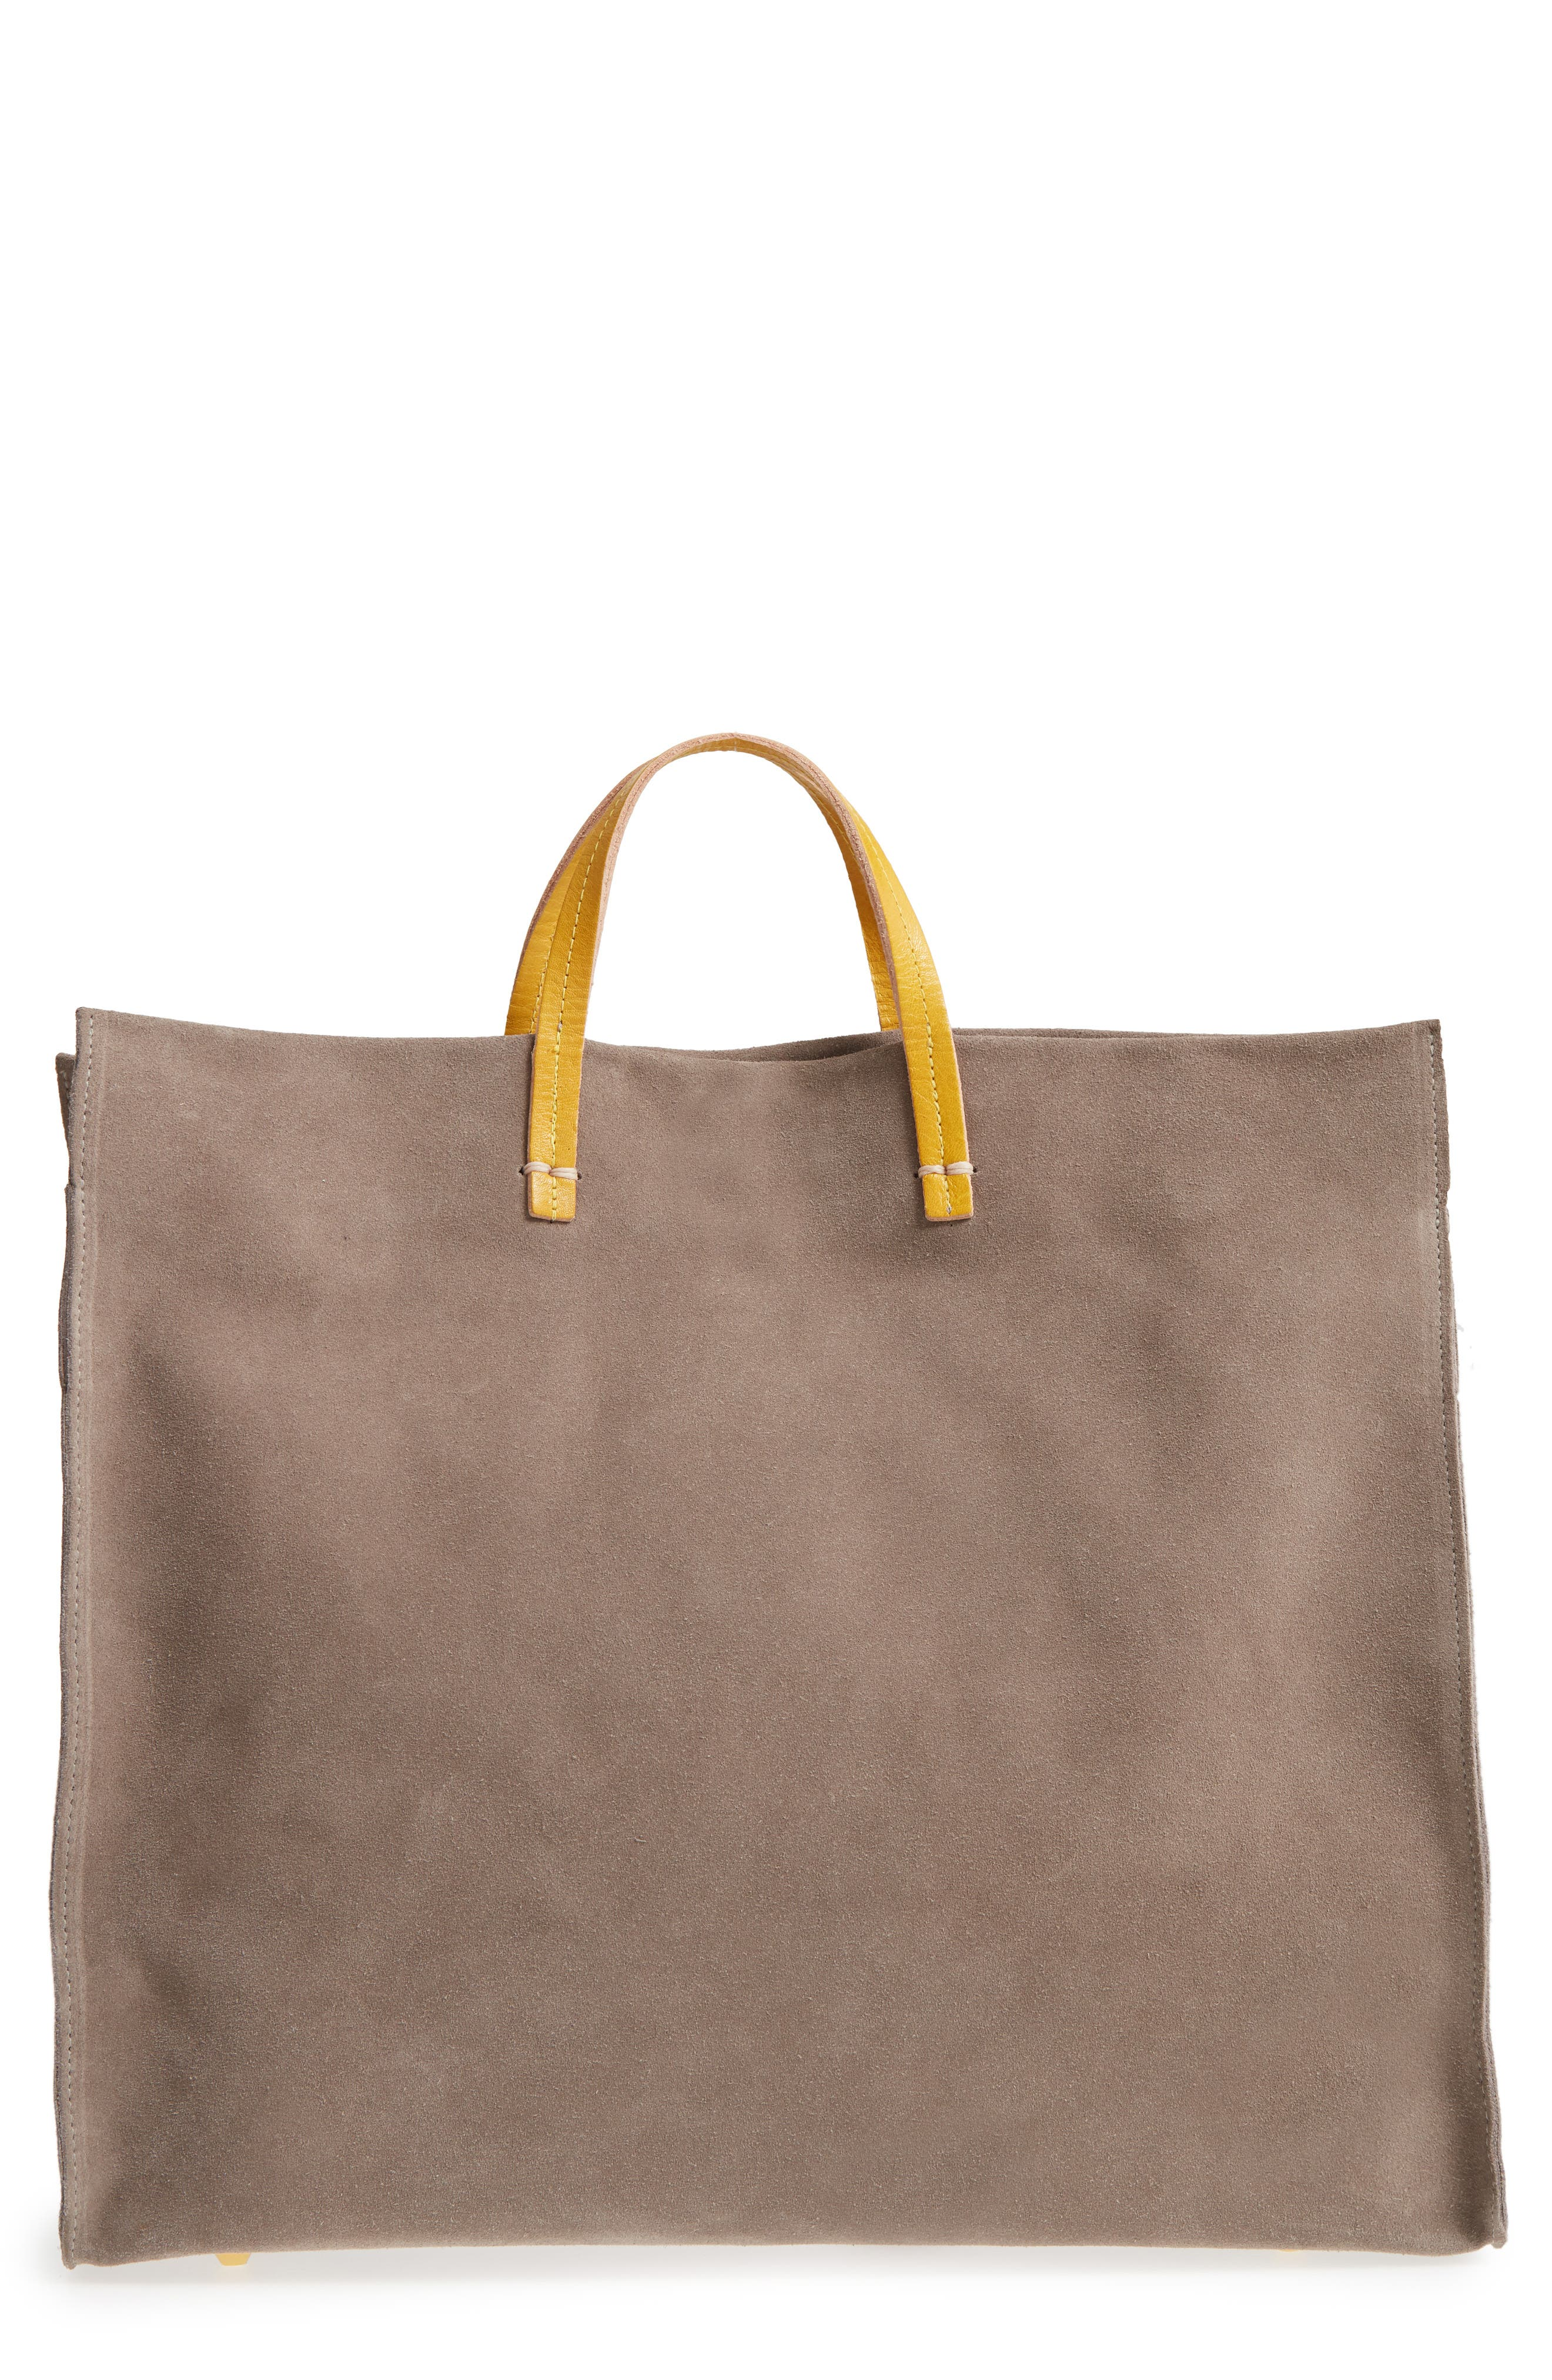 Simple Suede Tote,                             Main thumbnail 1, color,                             TAUPE/ YELLOW RUSTIC